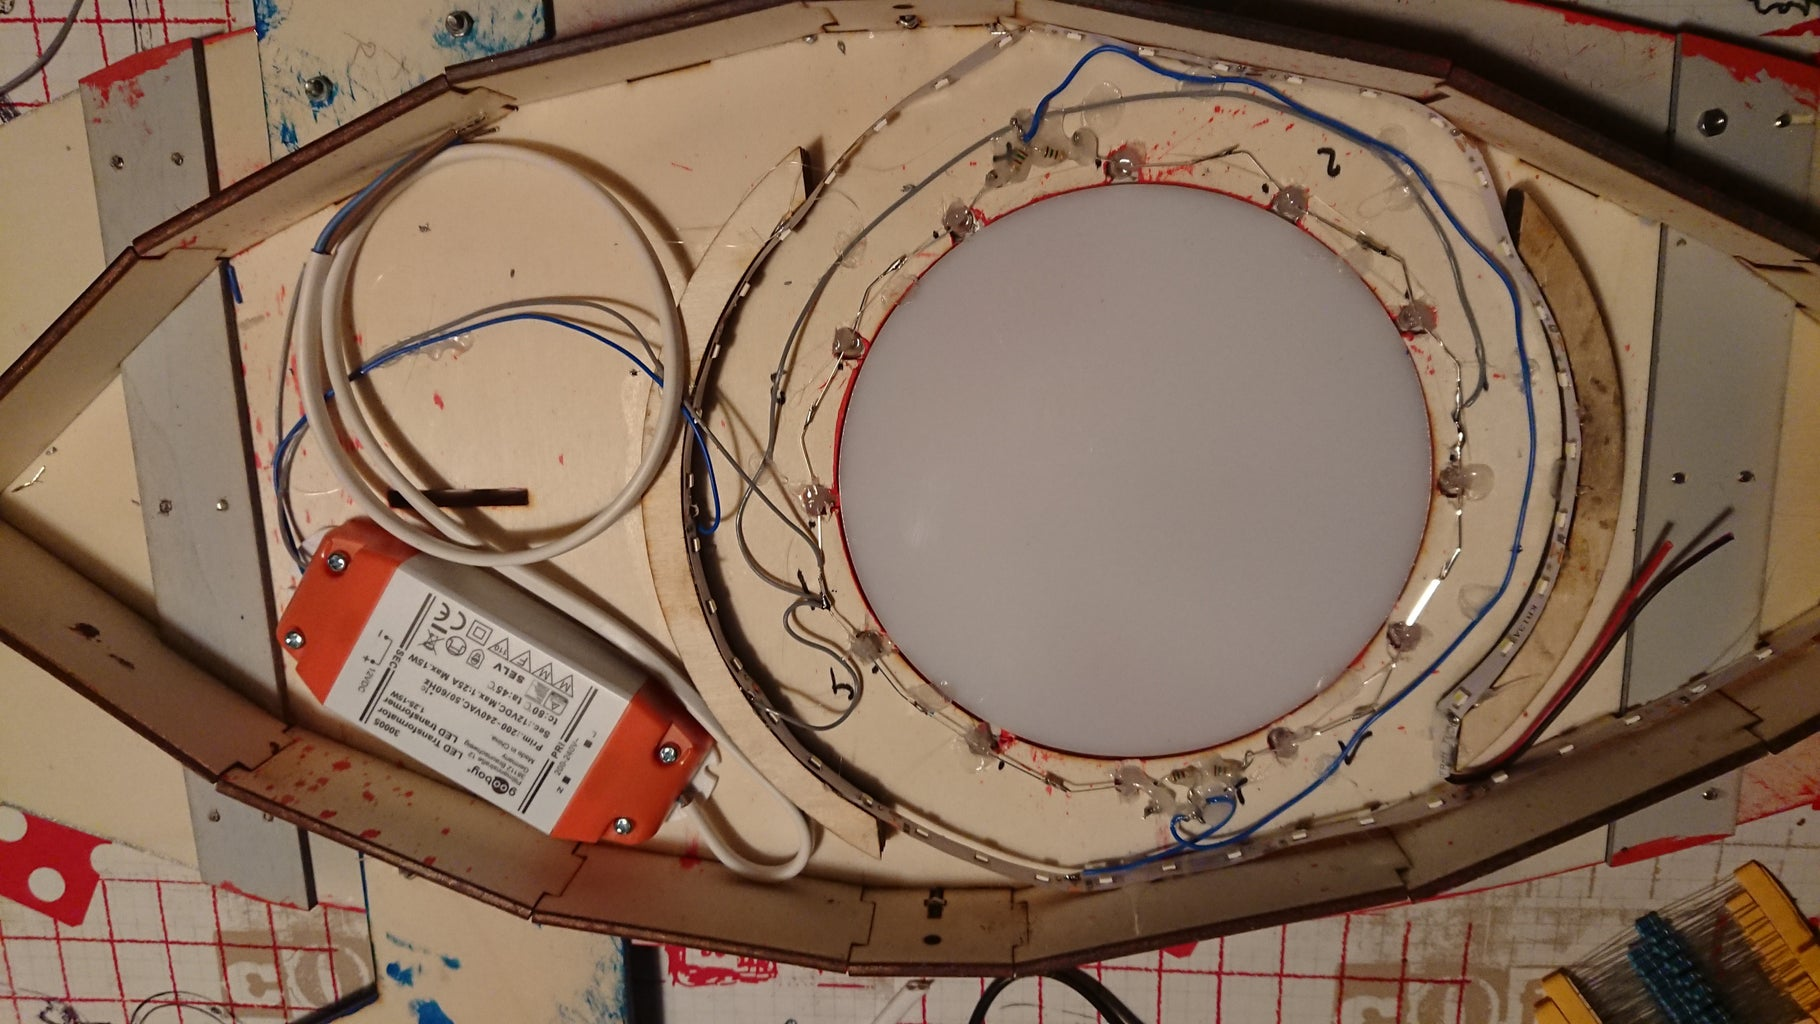 Leds and Wiring